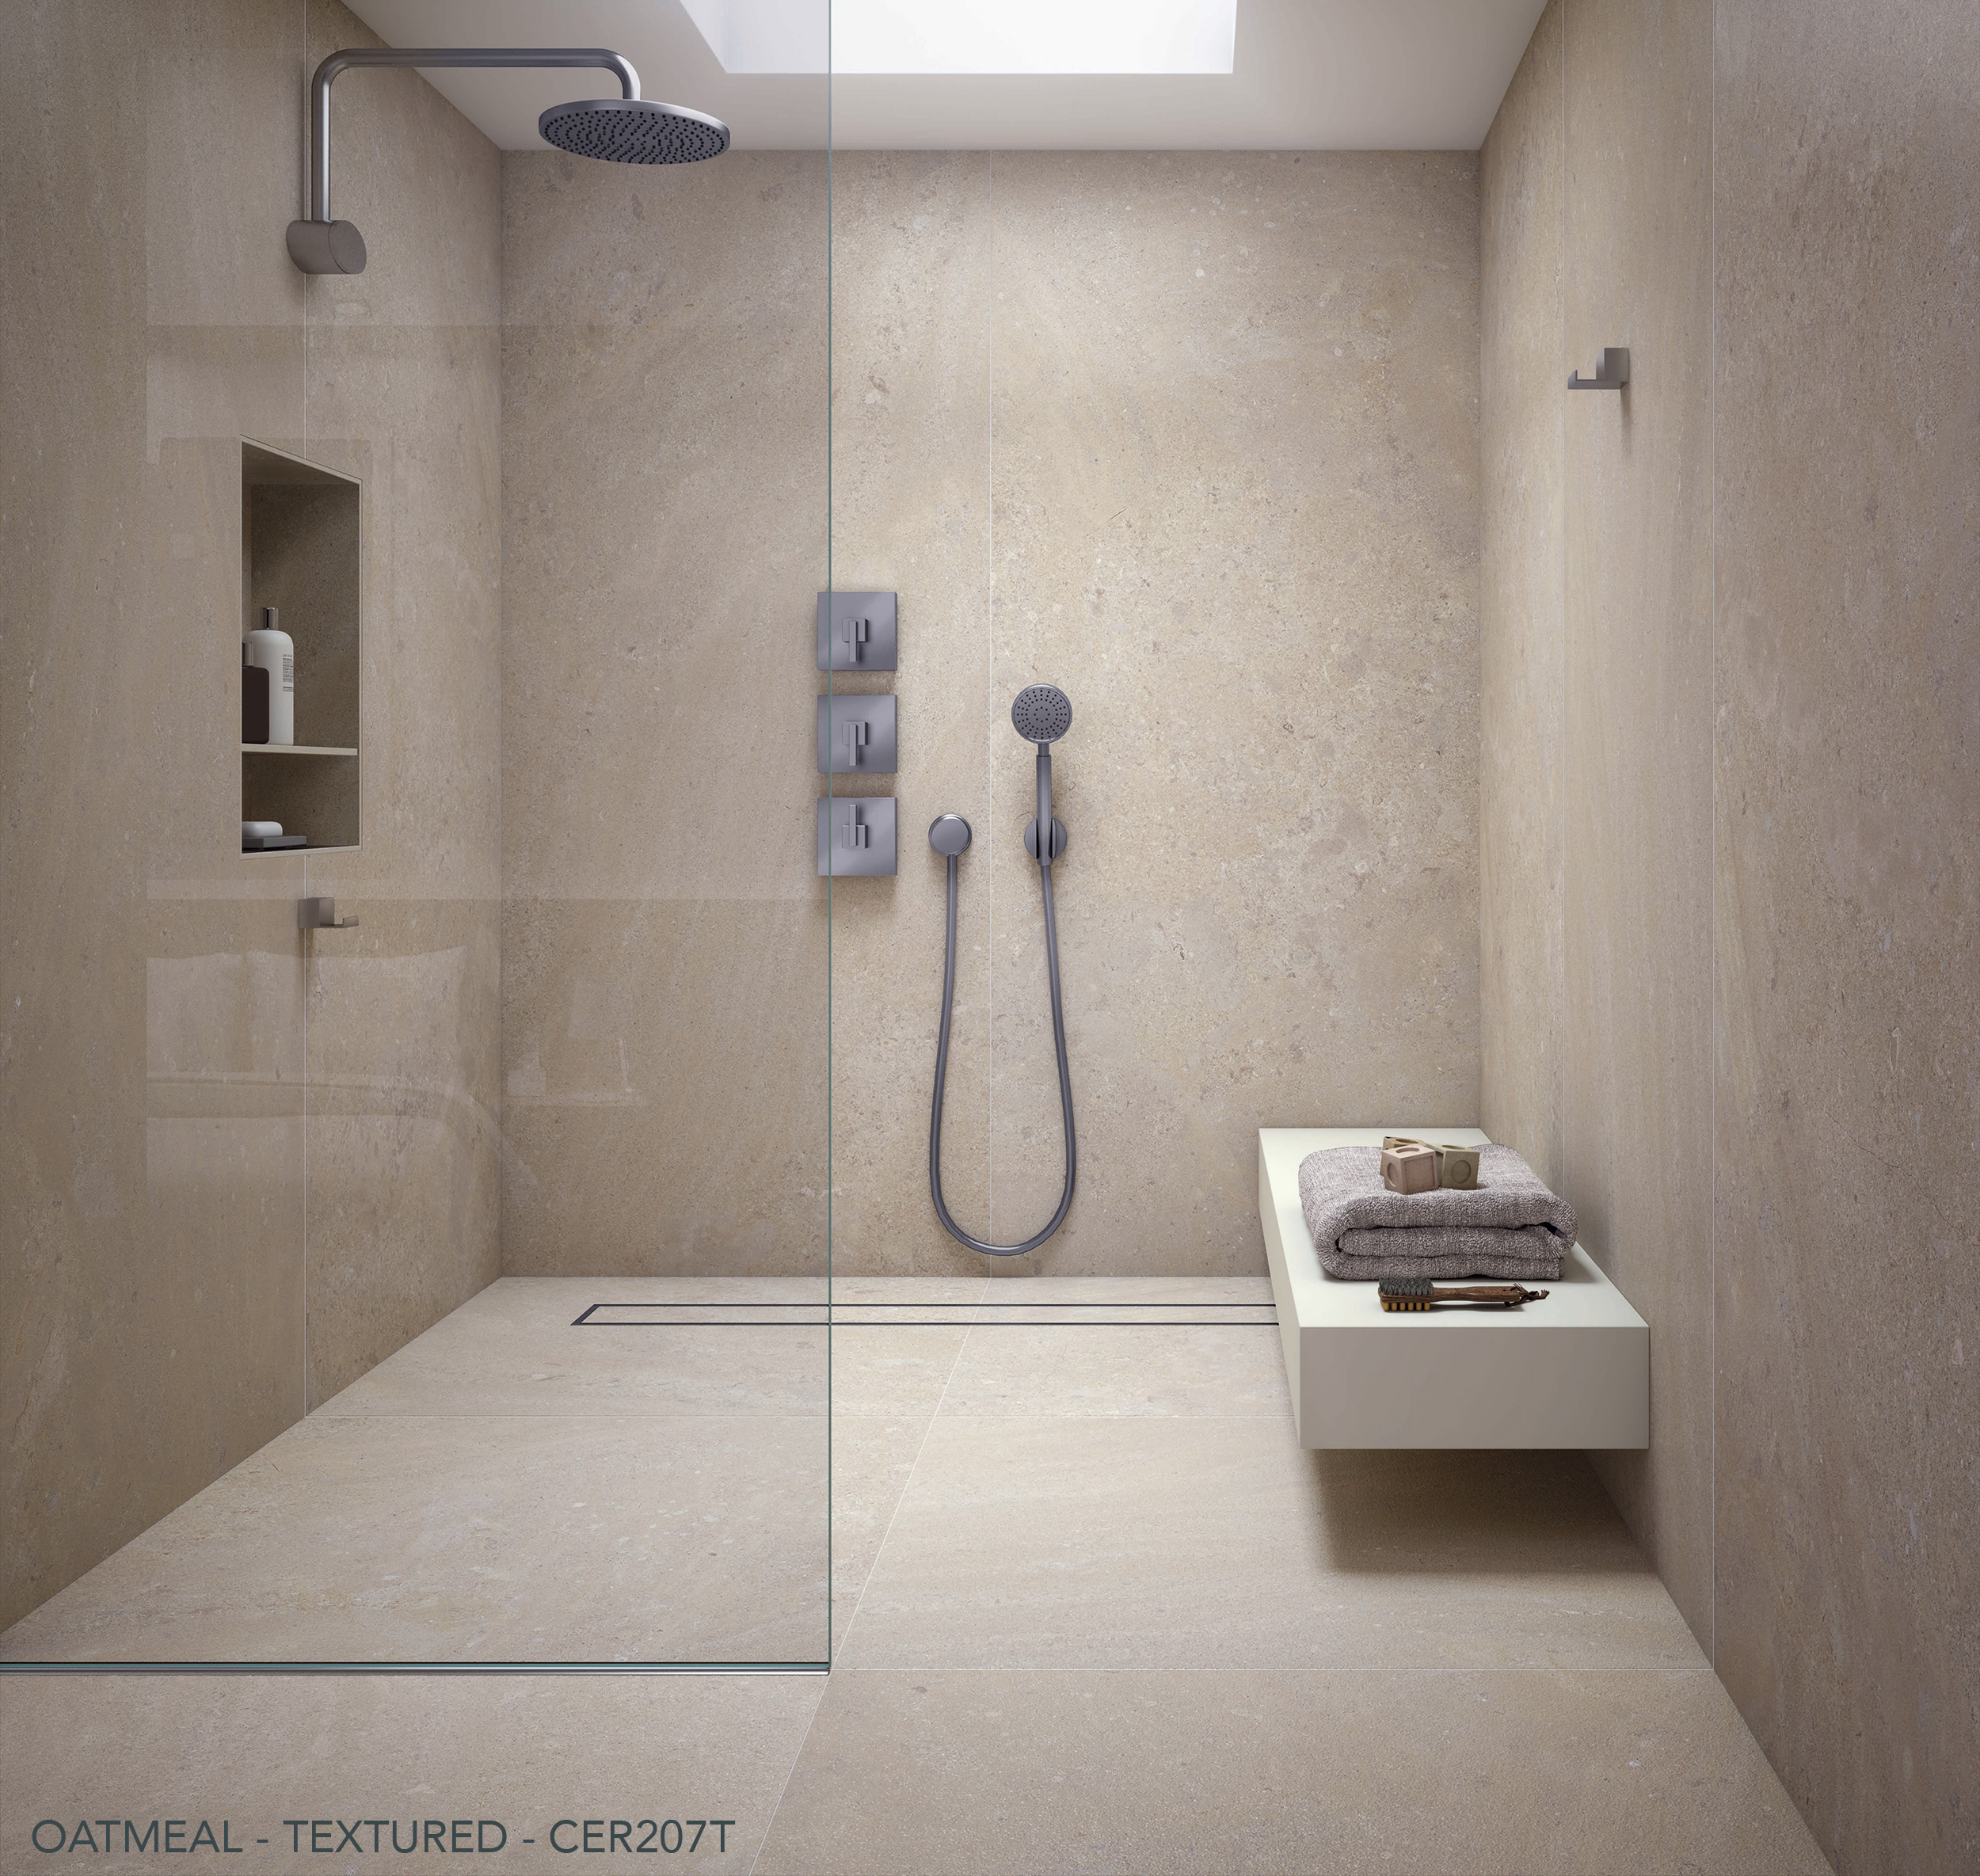 Ceralsio Oatmeal textured shower floor and wall tiles